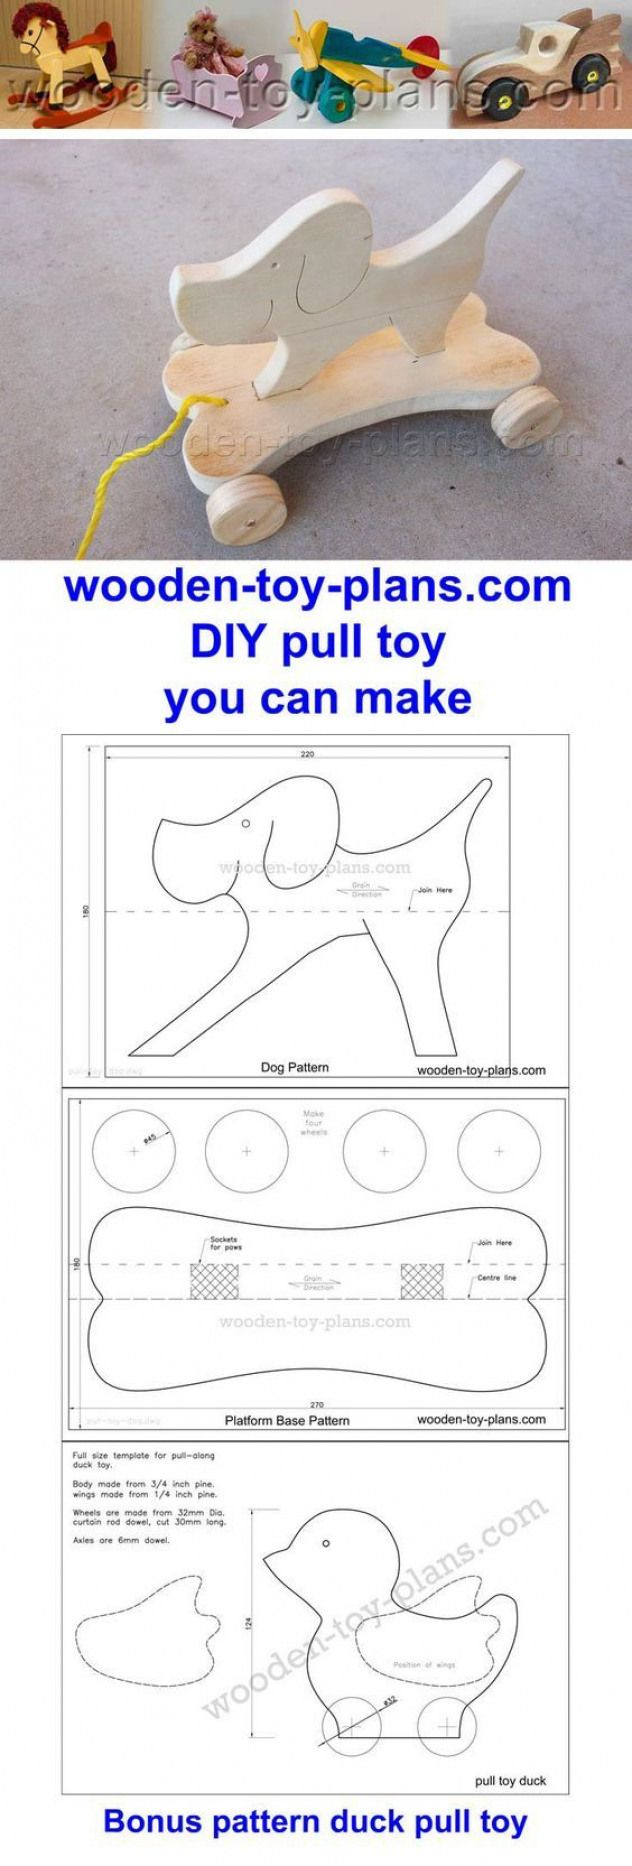 Diy Pull Toy You Can Make With Free Printable Scroll Saw Patterns Includes Bonus Duck Pattern Scroll Saw Patterns Free Scroll Saw Patterns Wooden Toys Plans